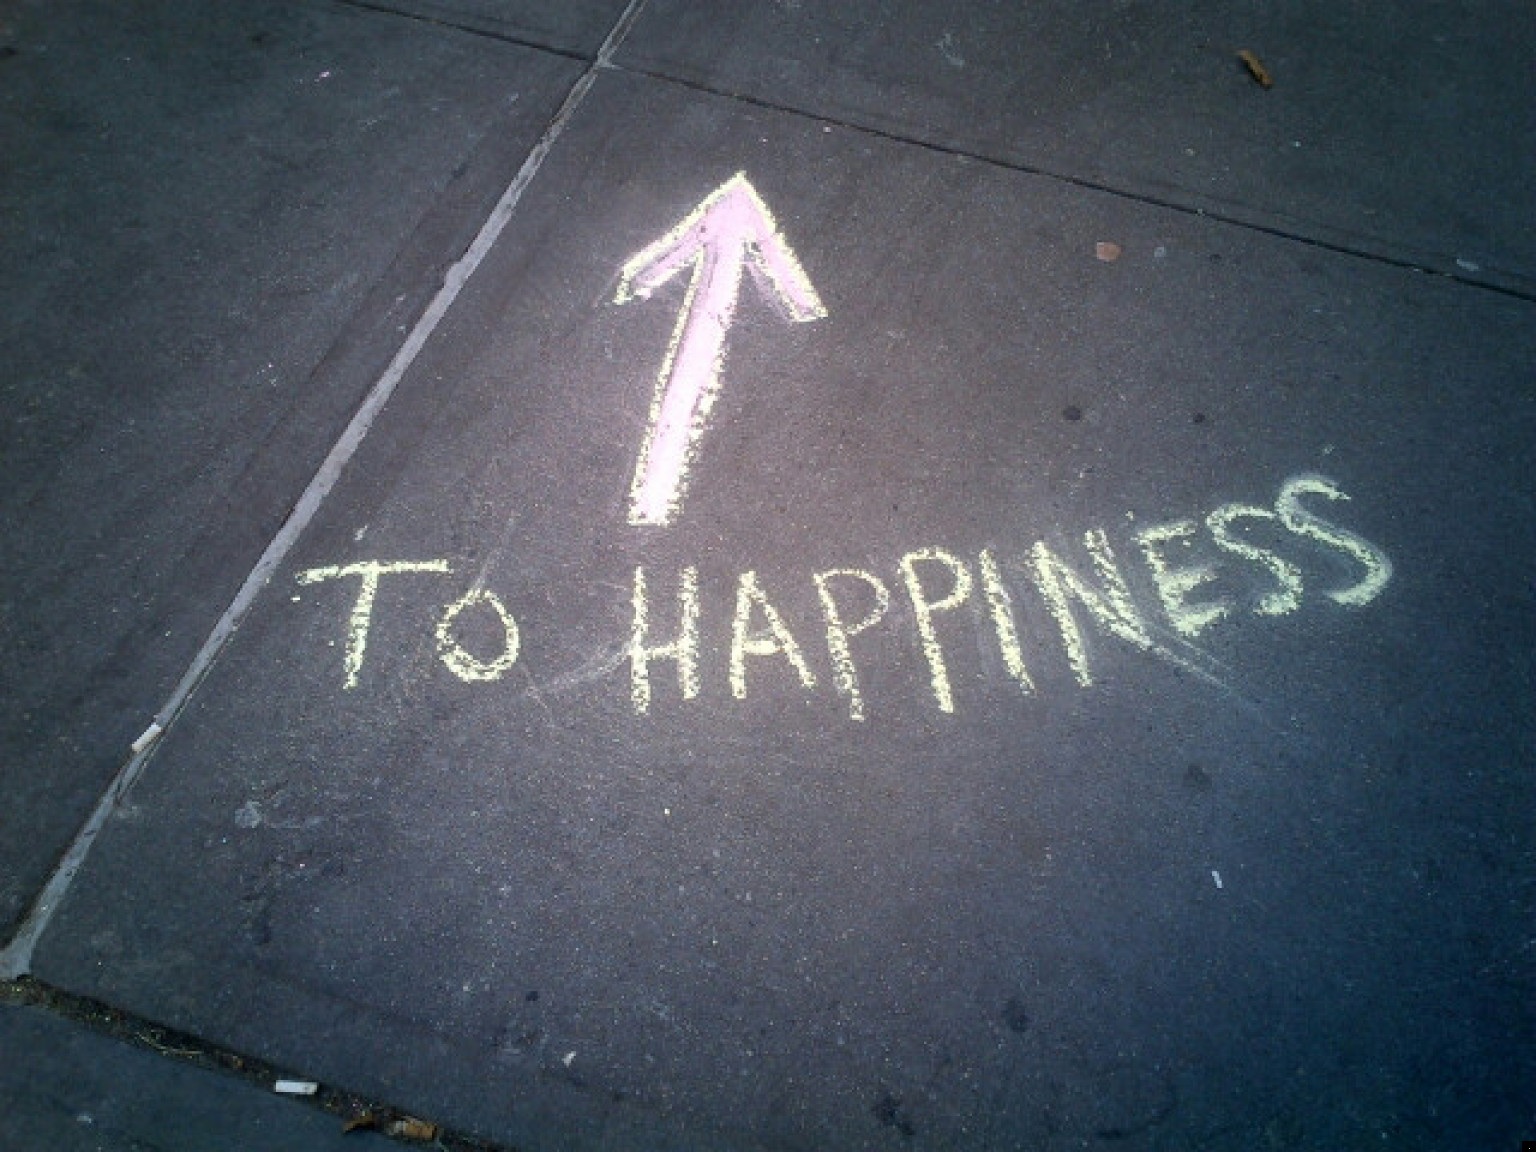 Happiness Images In Sidewalk Art Stickers Magnets And